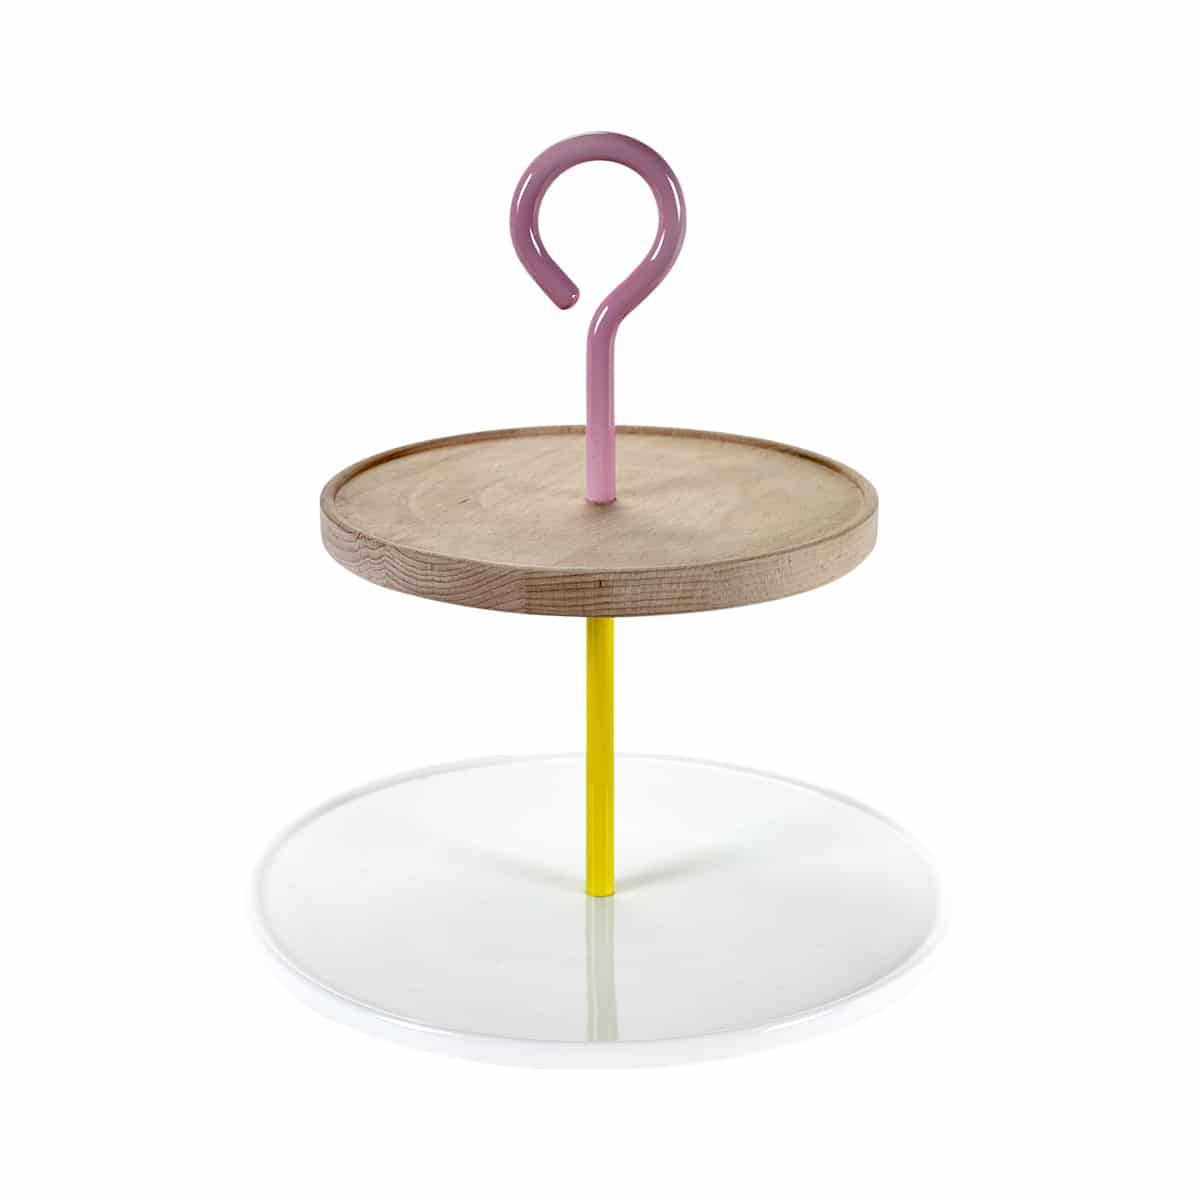 plateau two tier platter blanc (jaune/rose) de jansen+co zeeloft